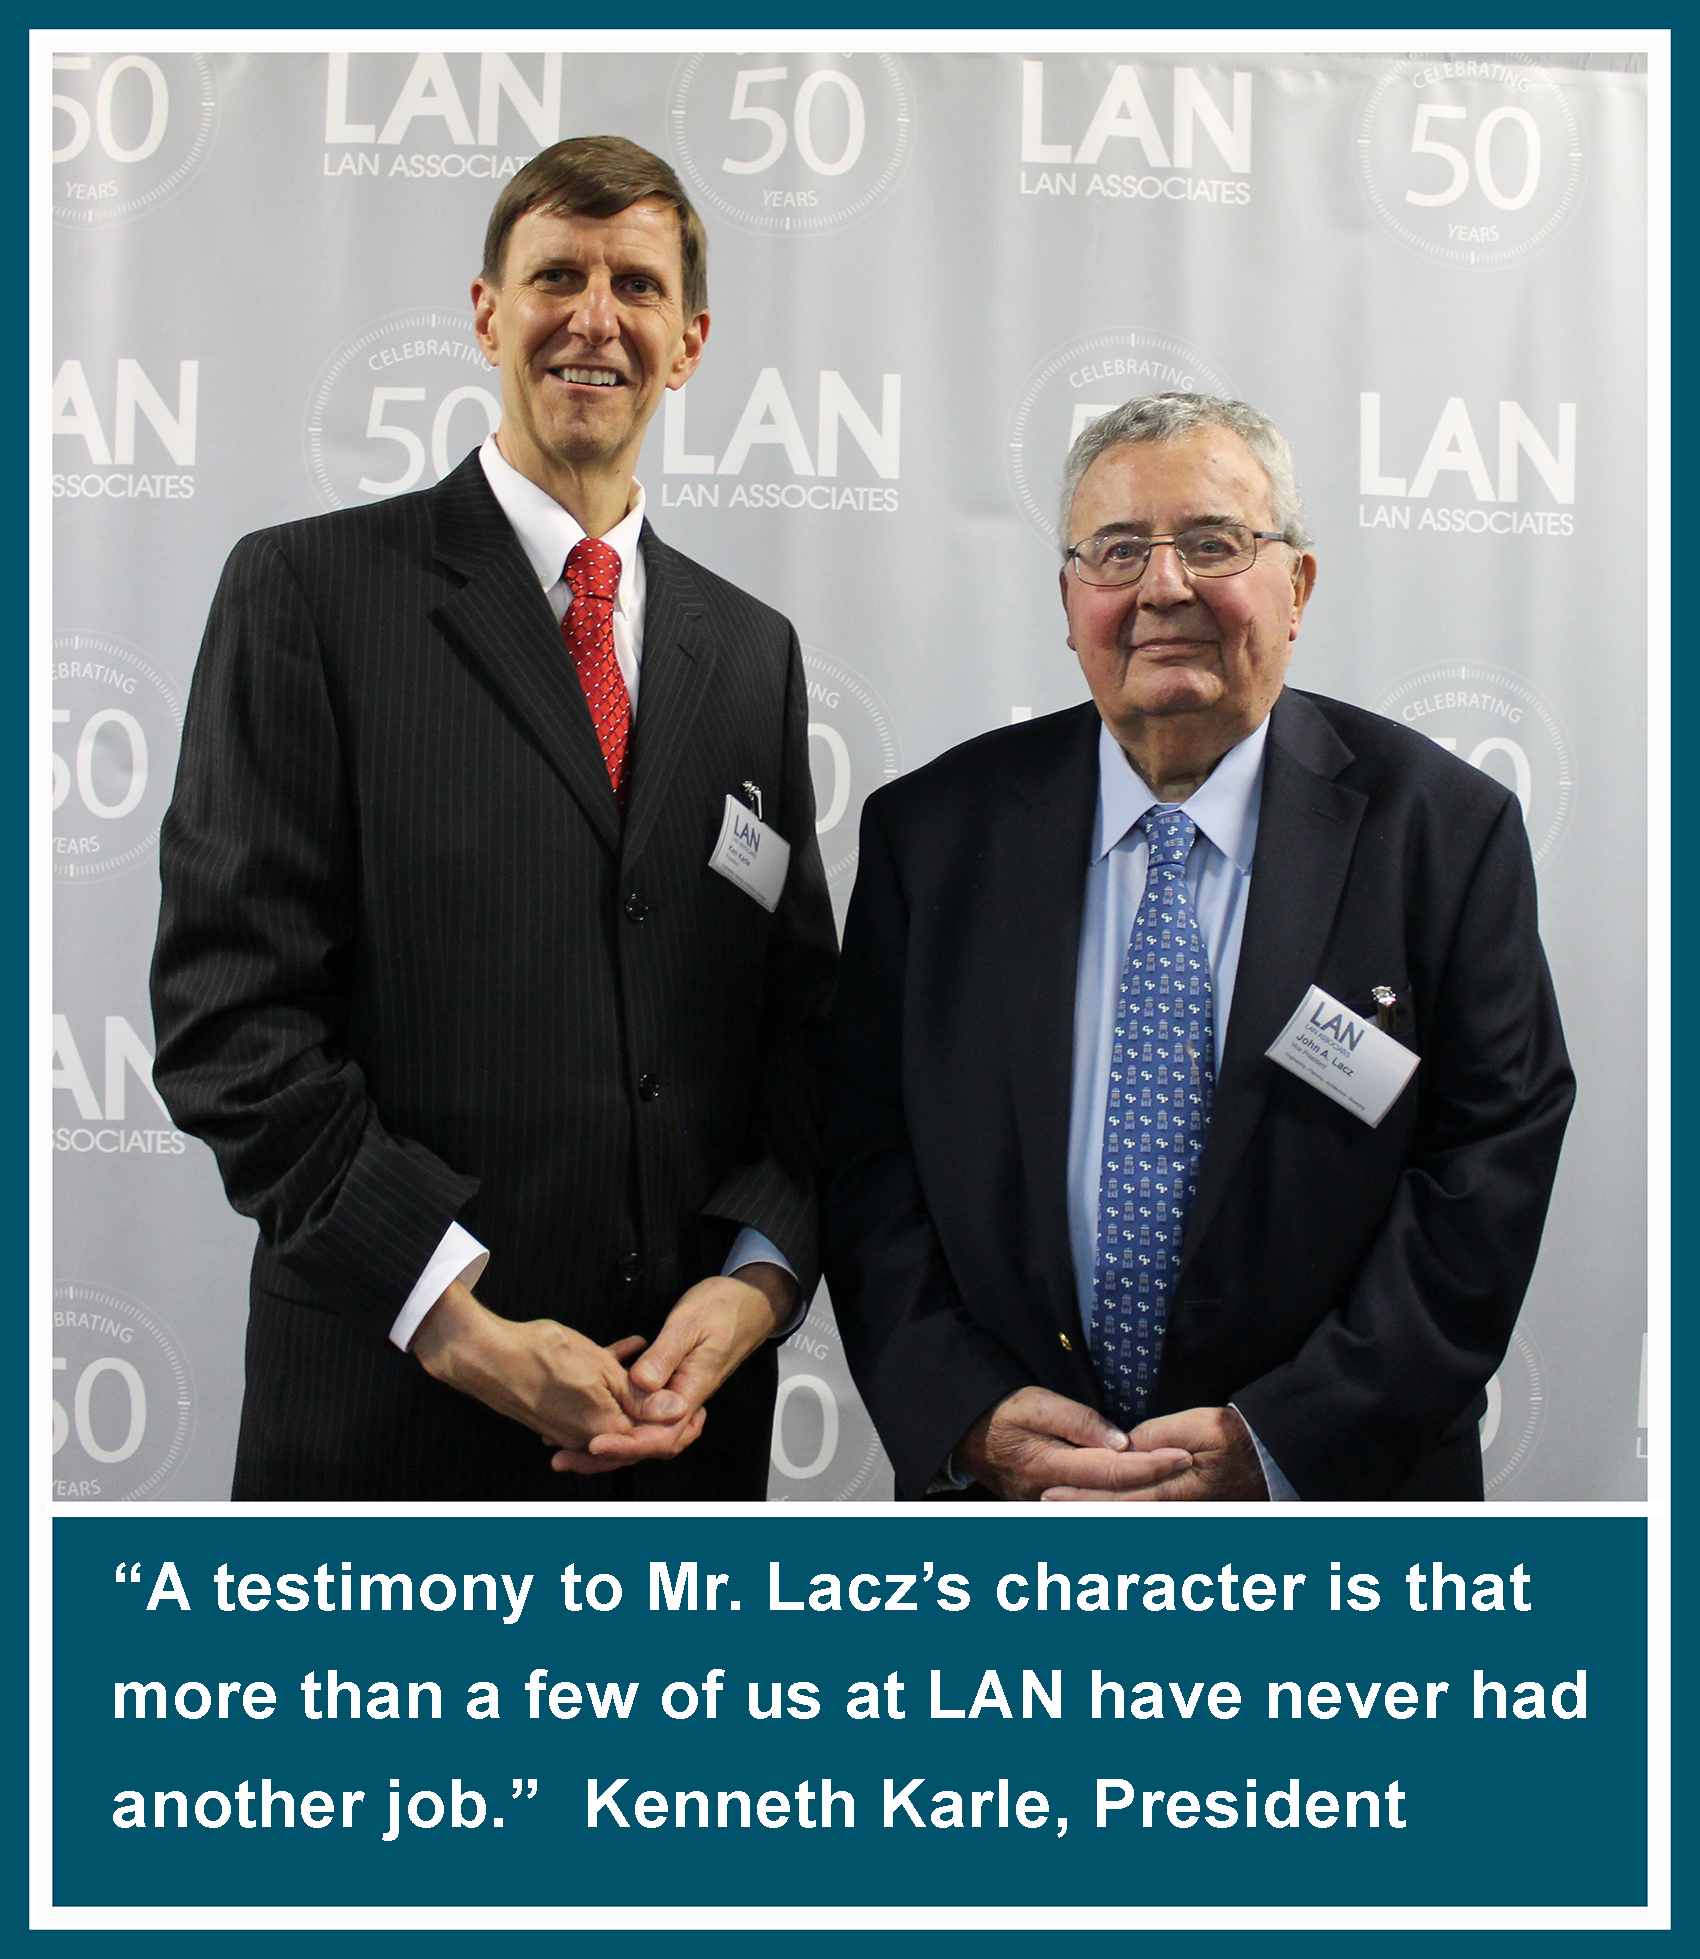 Kenneth Karle, President of LAN with LAN Founder John Lacz